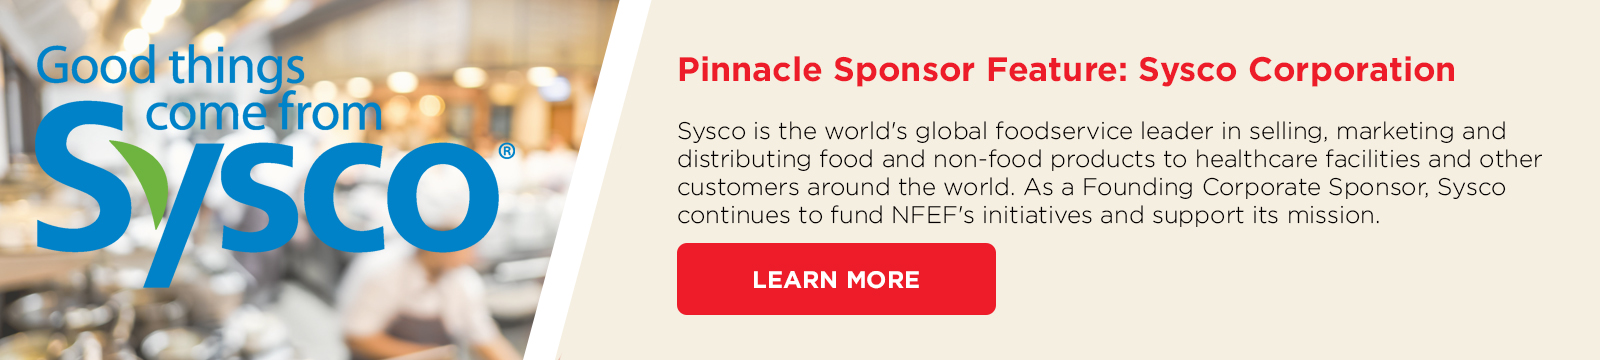 Thank you to the NFEF Pinnacle Sponsor, Sysco Corporation